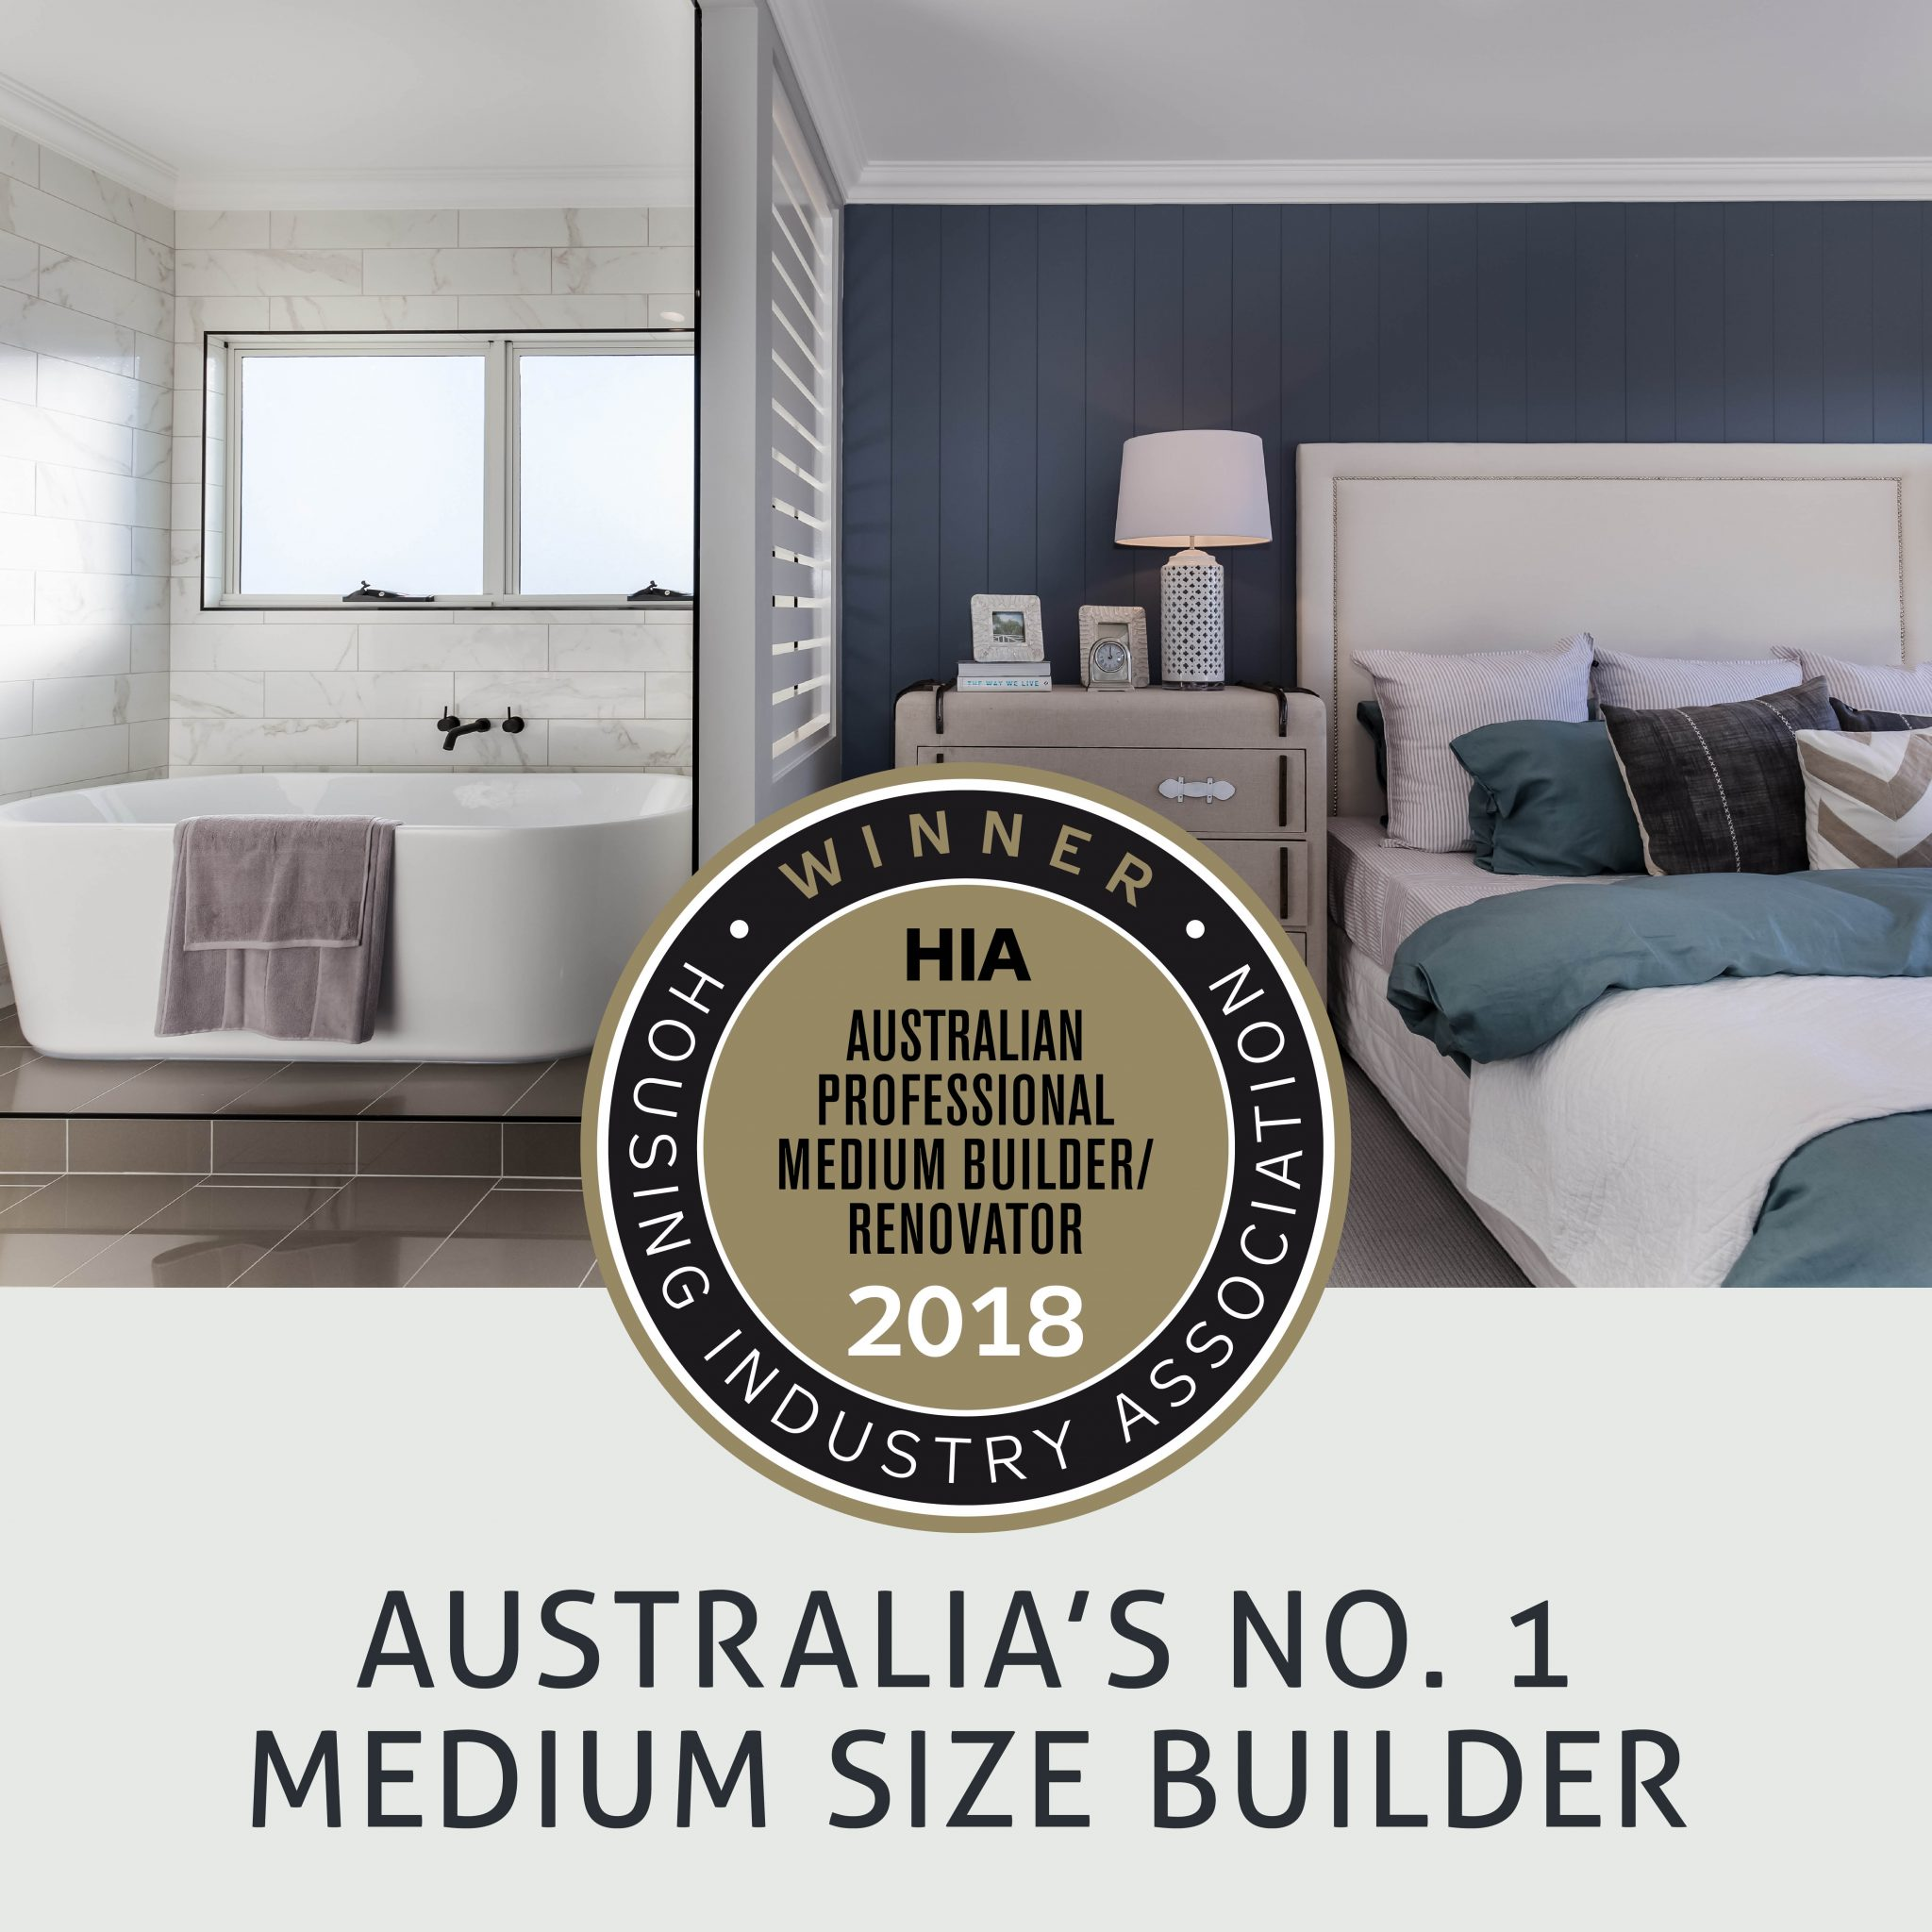 Bold Living Australias No1 Medium Size Builder Australian Dream Home Design Two Storey 4 Bed Room House Plan For Contact Property Pro 1